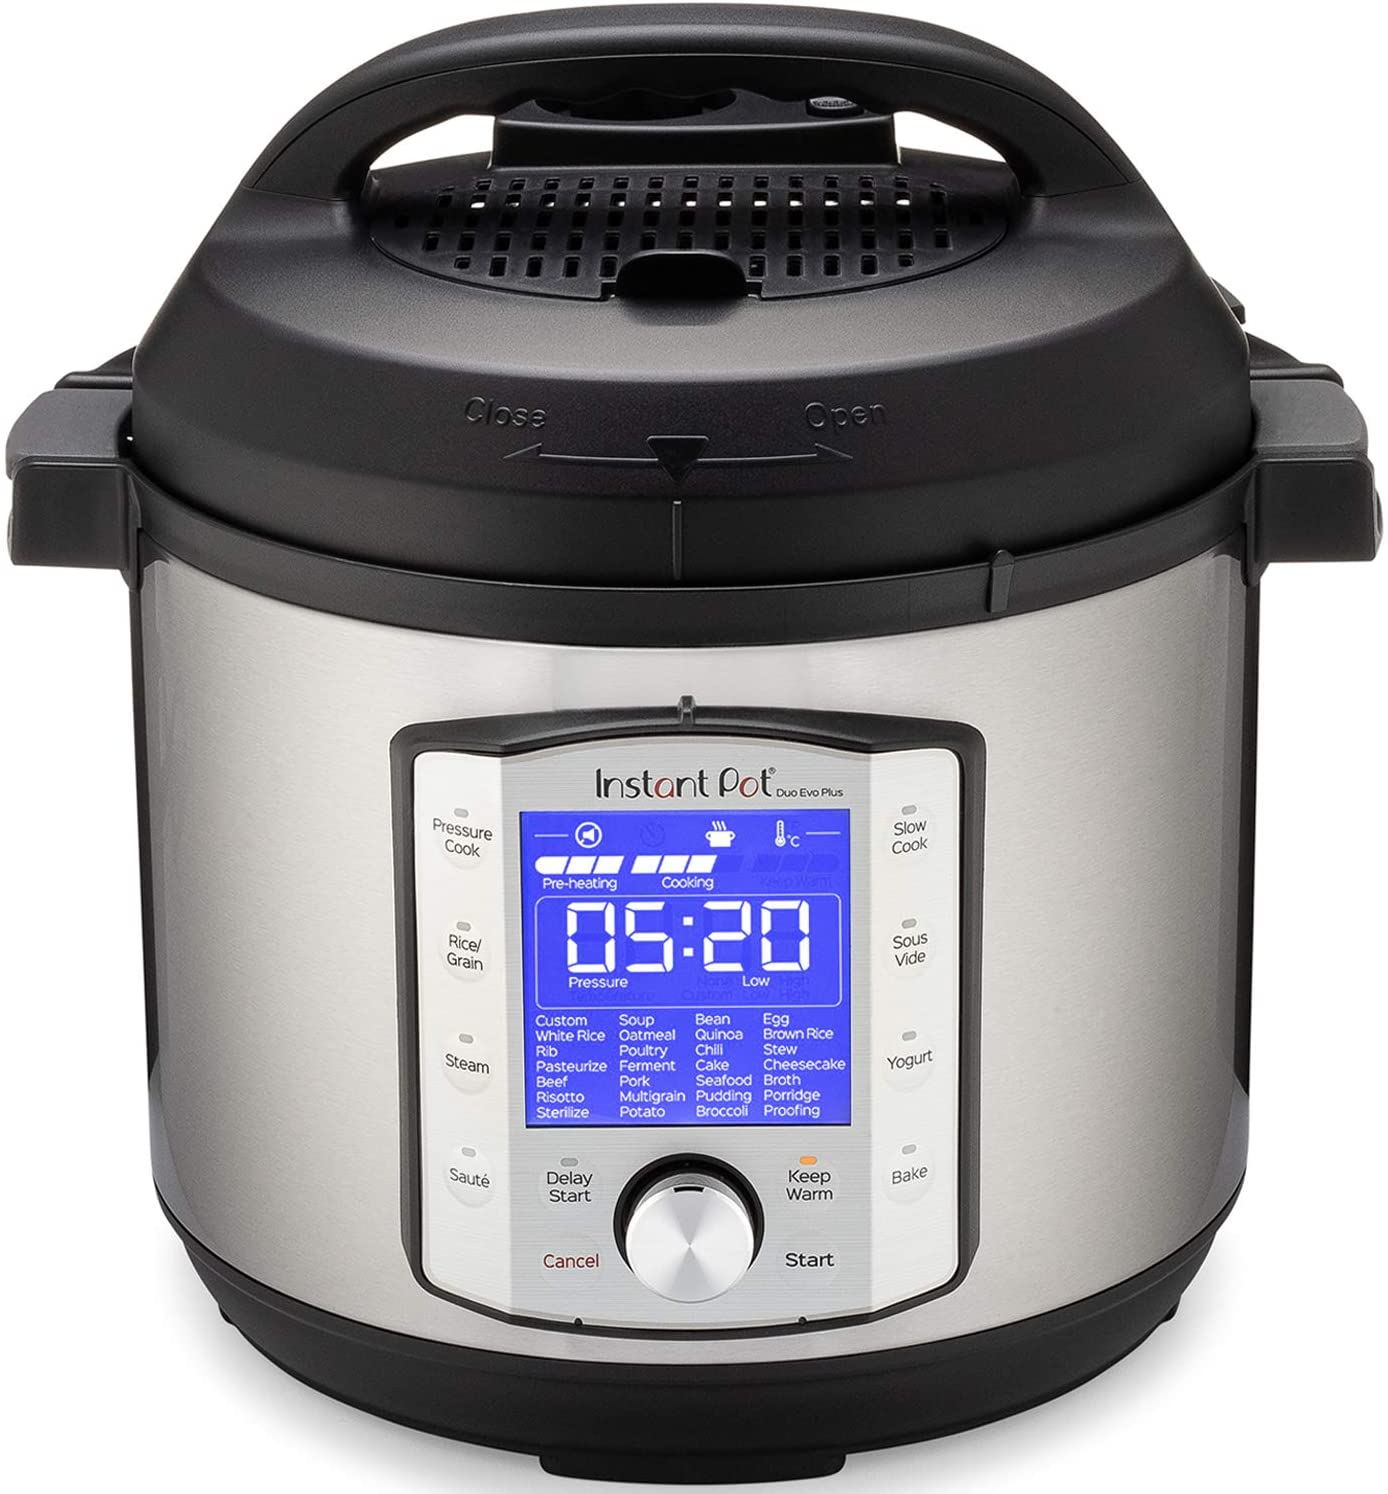 Instant Pot Duo Evo Plus 9-in-1 Electric Pressure Cooker, Sterilizer, Slow Cooker, Rice Cooker, Grain Maker, Steamer, Saute, Yogurt Maker, Sous Vide, Bake, and Warmer, 6 Quart, 10 Programs